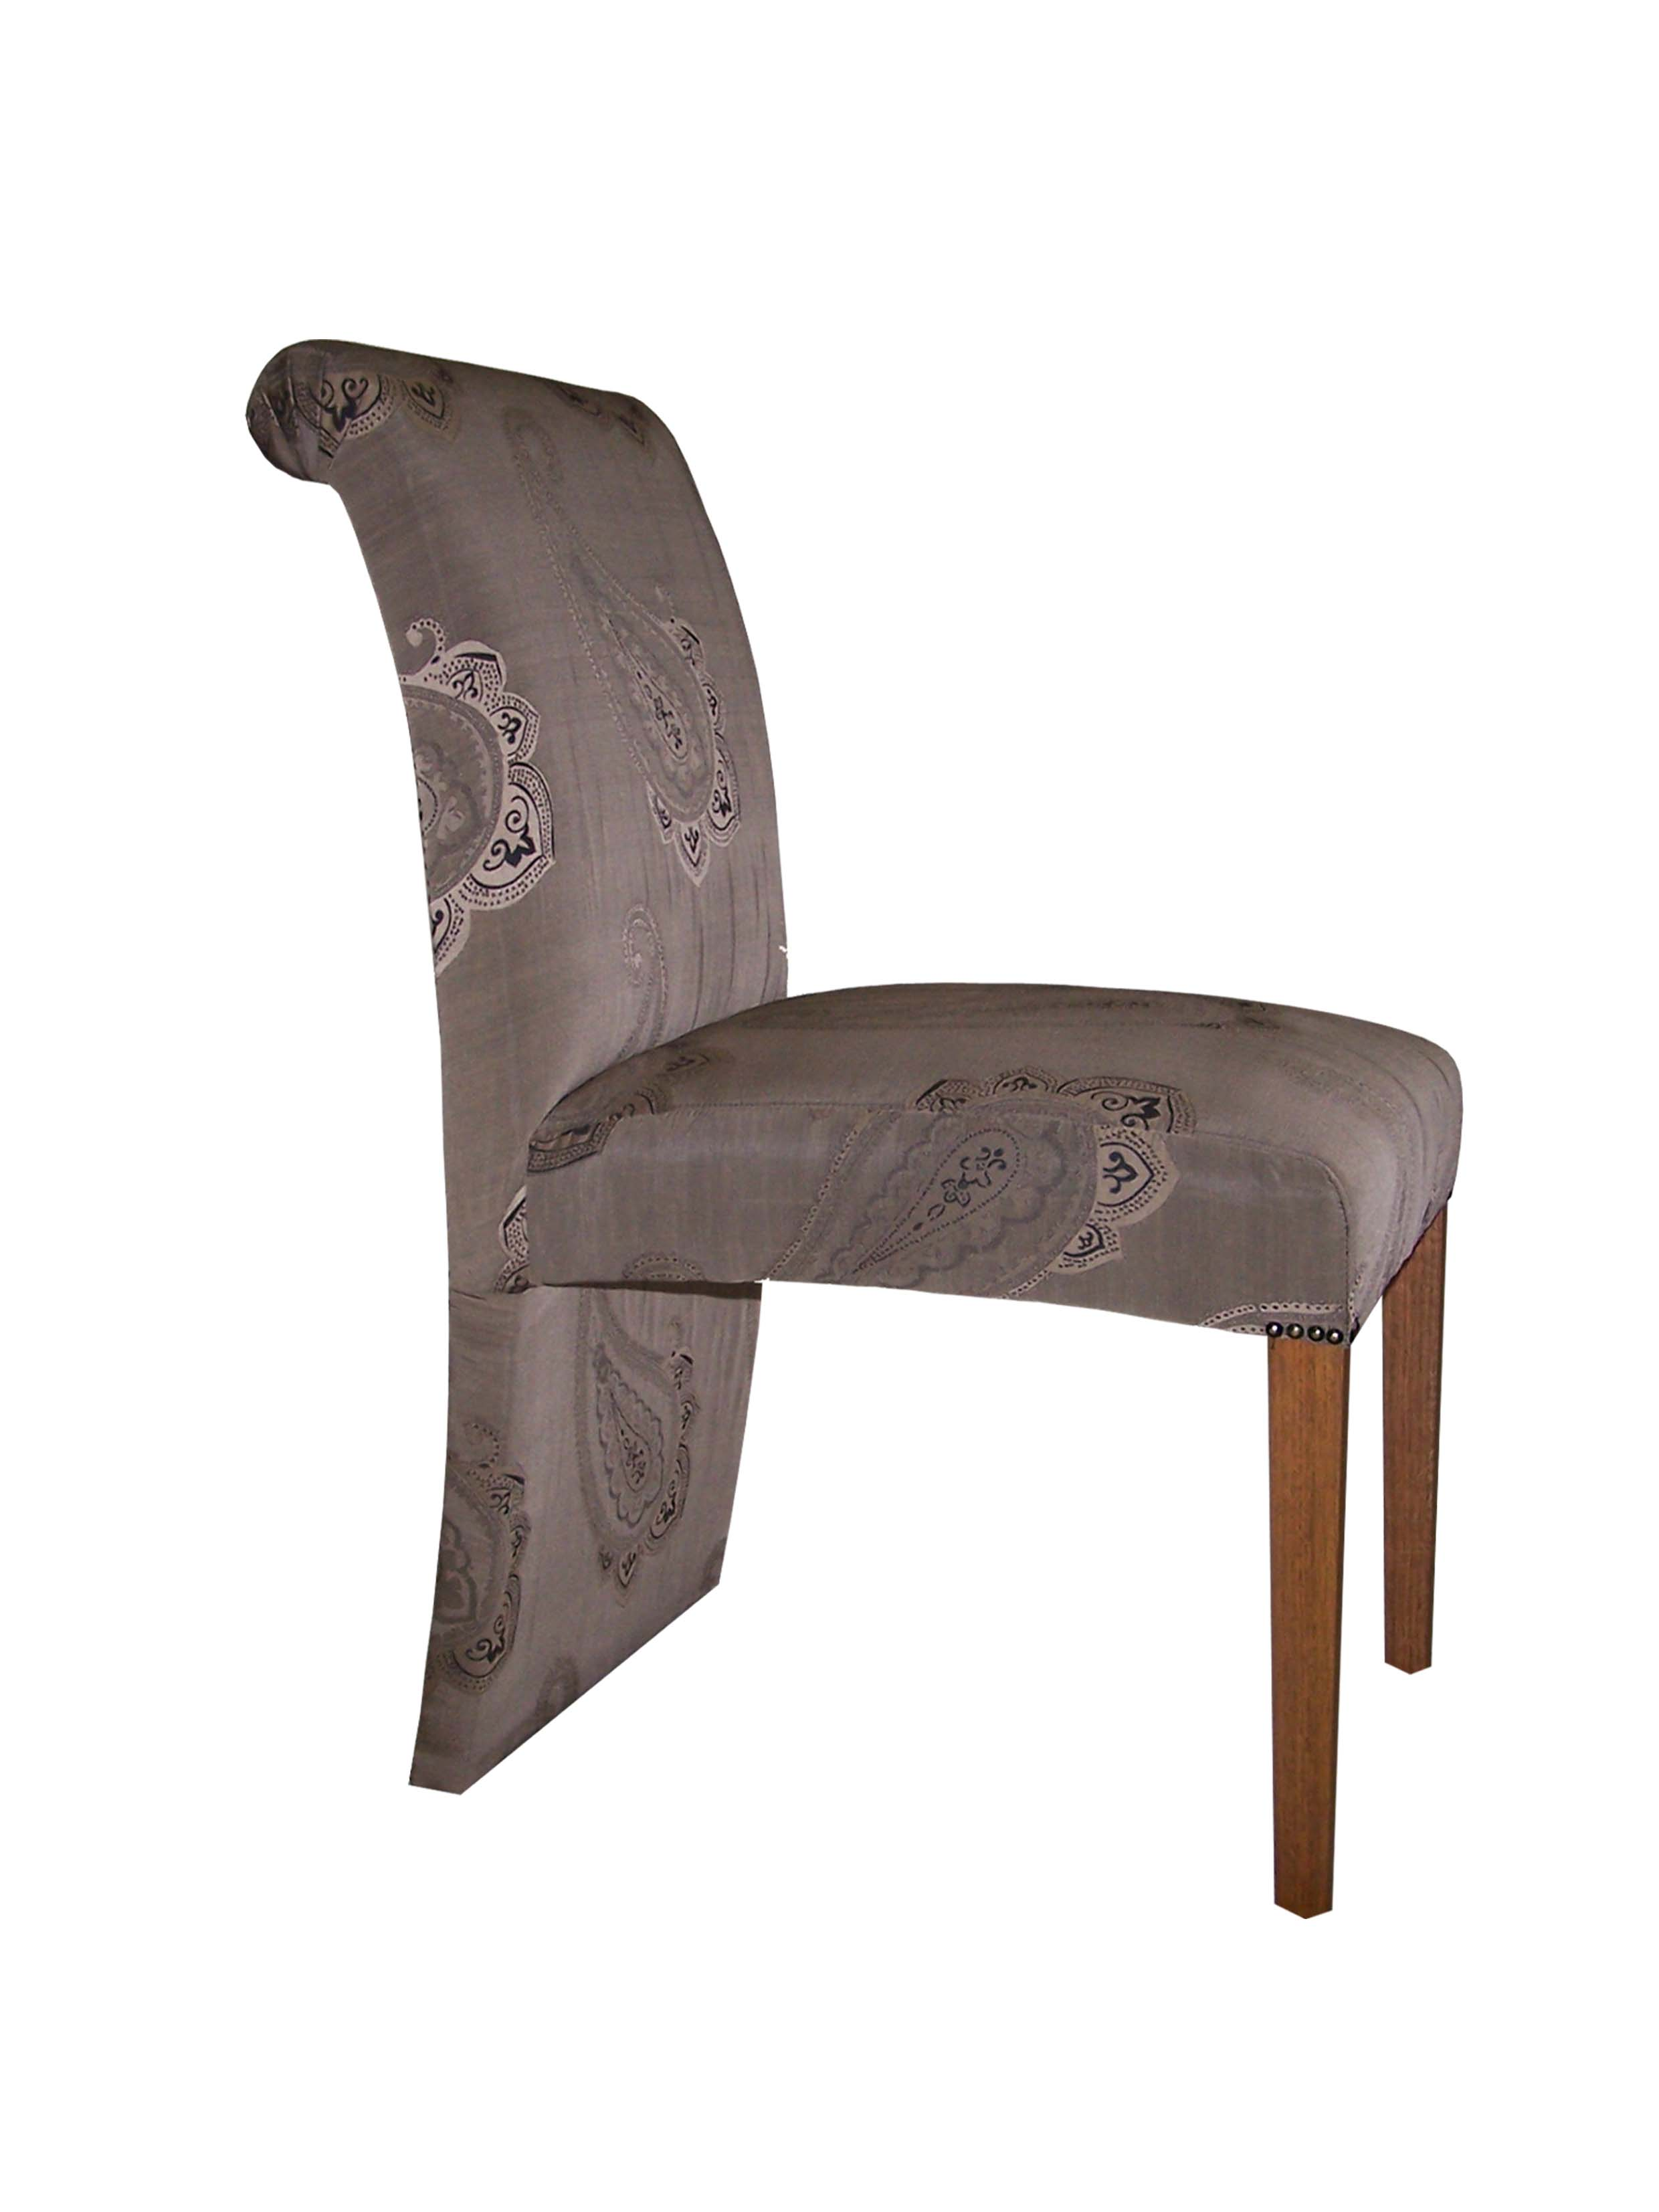 Cheap dining chairs gold coast best of cheap chairs for Cheap modern furniture amazon